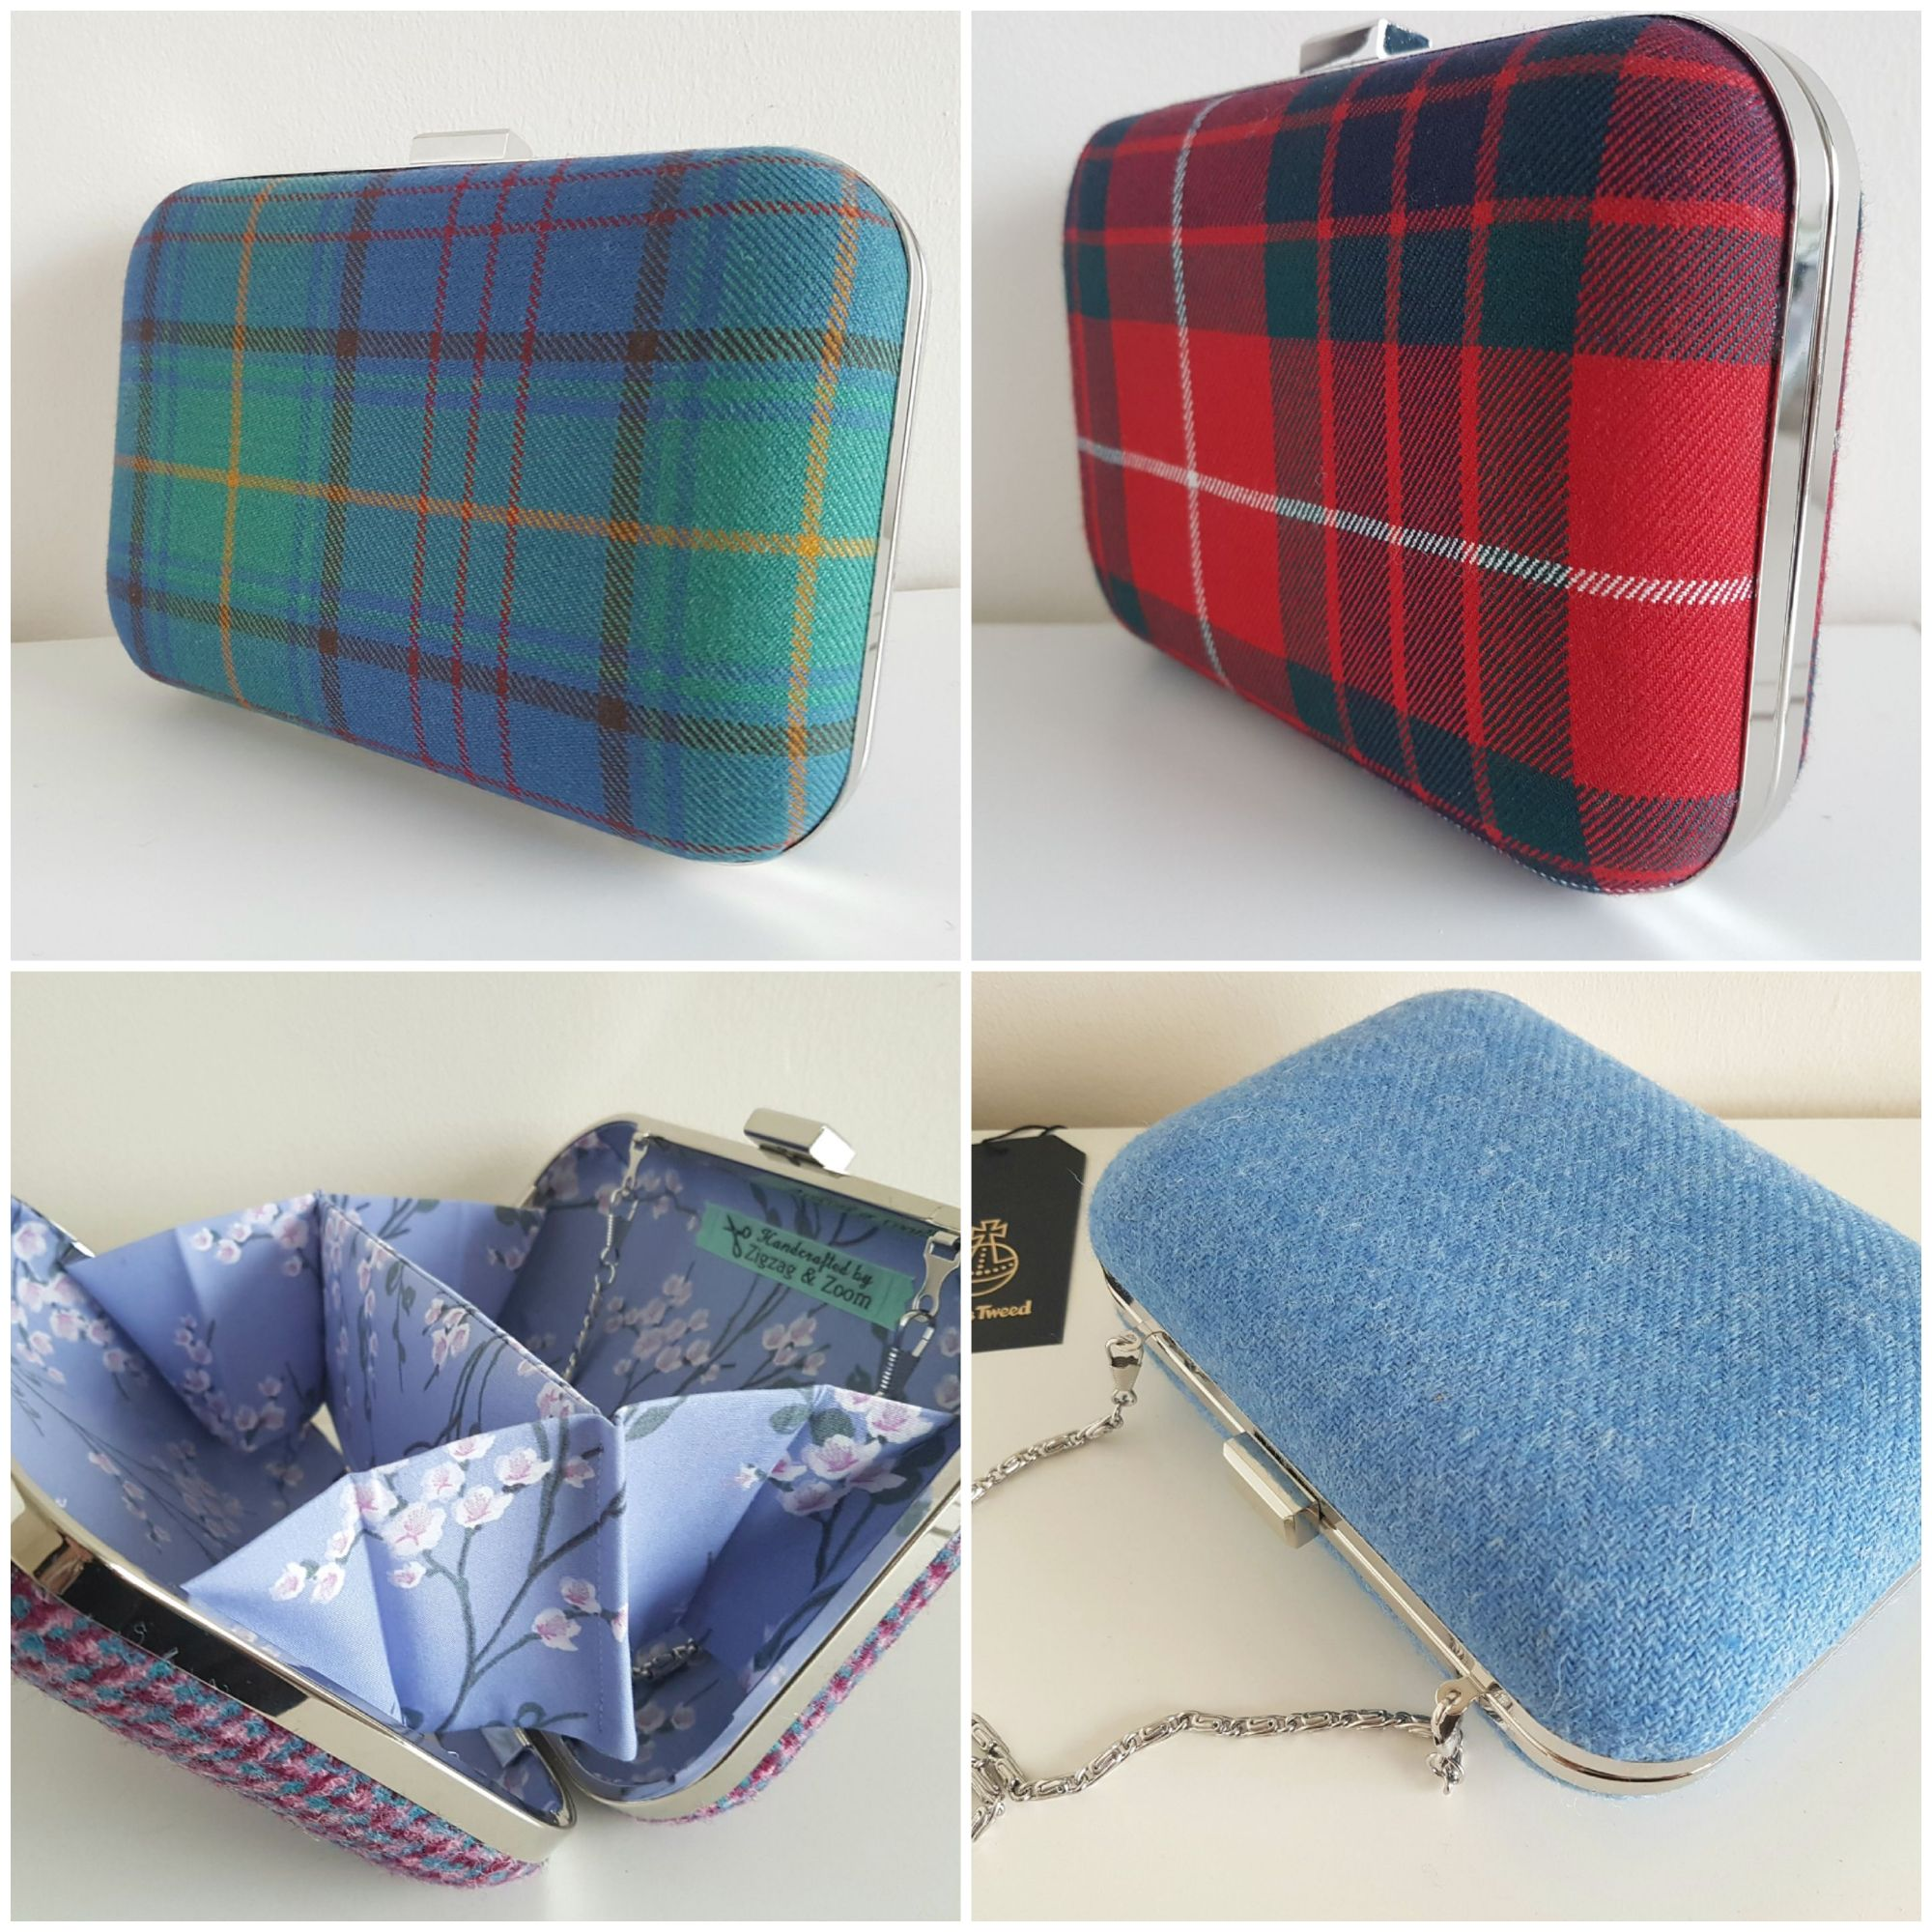 Fraser Red Tartan, Green Tartan clutch bag, Harris Tweed bags